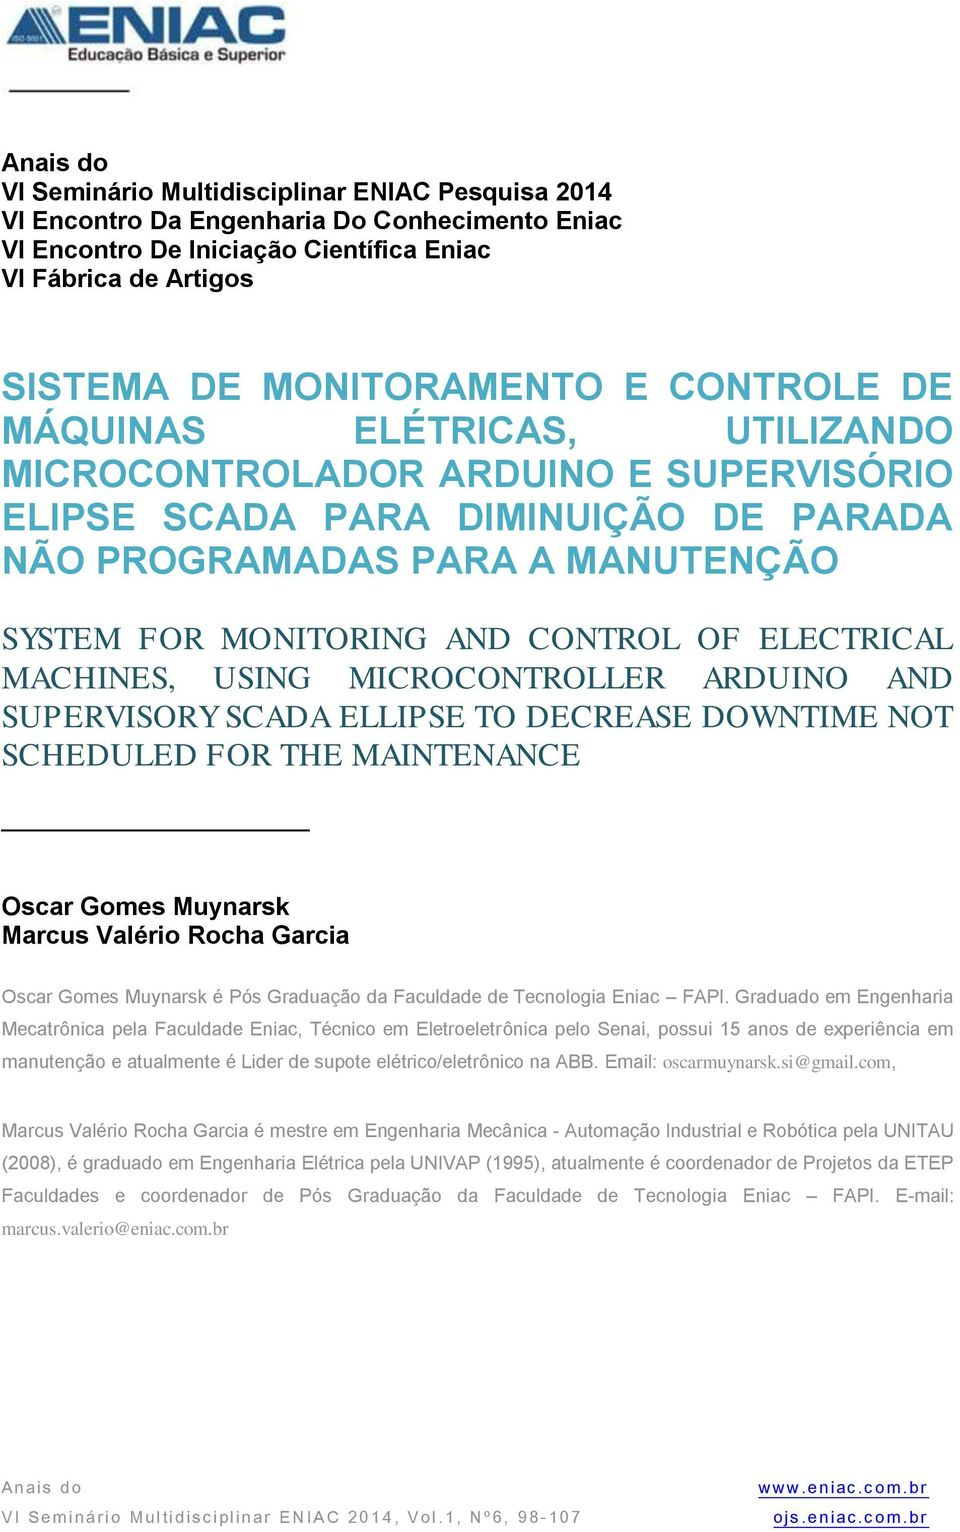 ELECTRICAL MACHINES, USING MICROCONTROLLER ARDUINO AND SUPERVISORY SCADA ELLIPSE TO DECREASE DOWNTIME NOT SCHEDULED FOR THE MAINTENANCE Oscar Gomes Muynarsk Marcus Valério Rocha Garcia Oscar Gomes